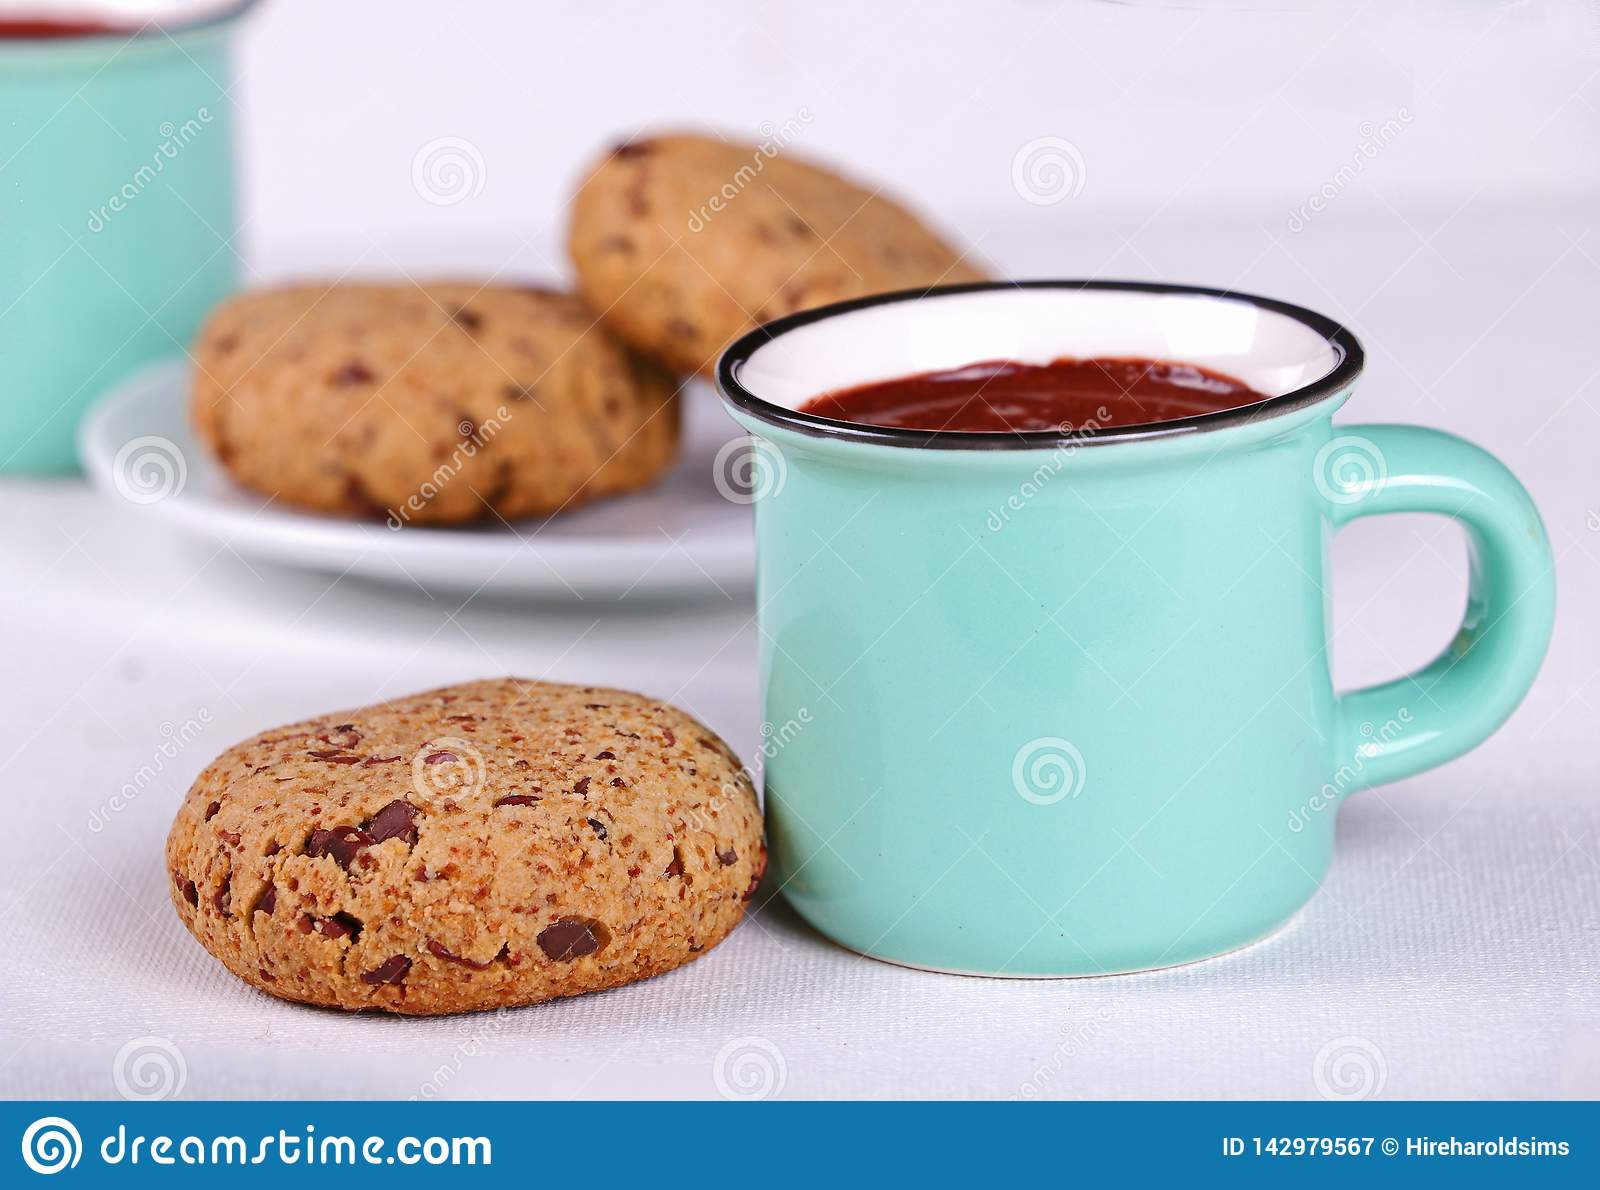 Hot cocoa and chocolate chip cookies